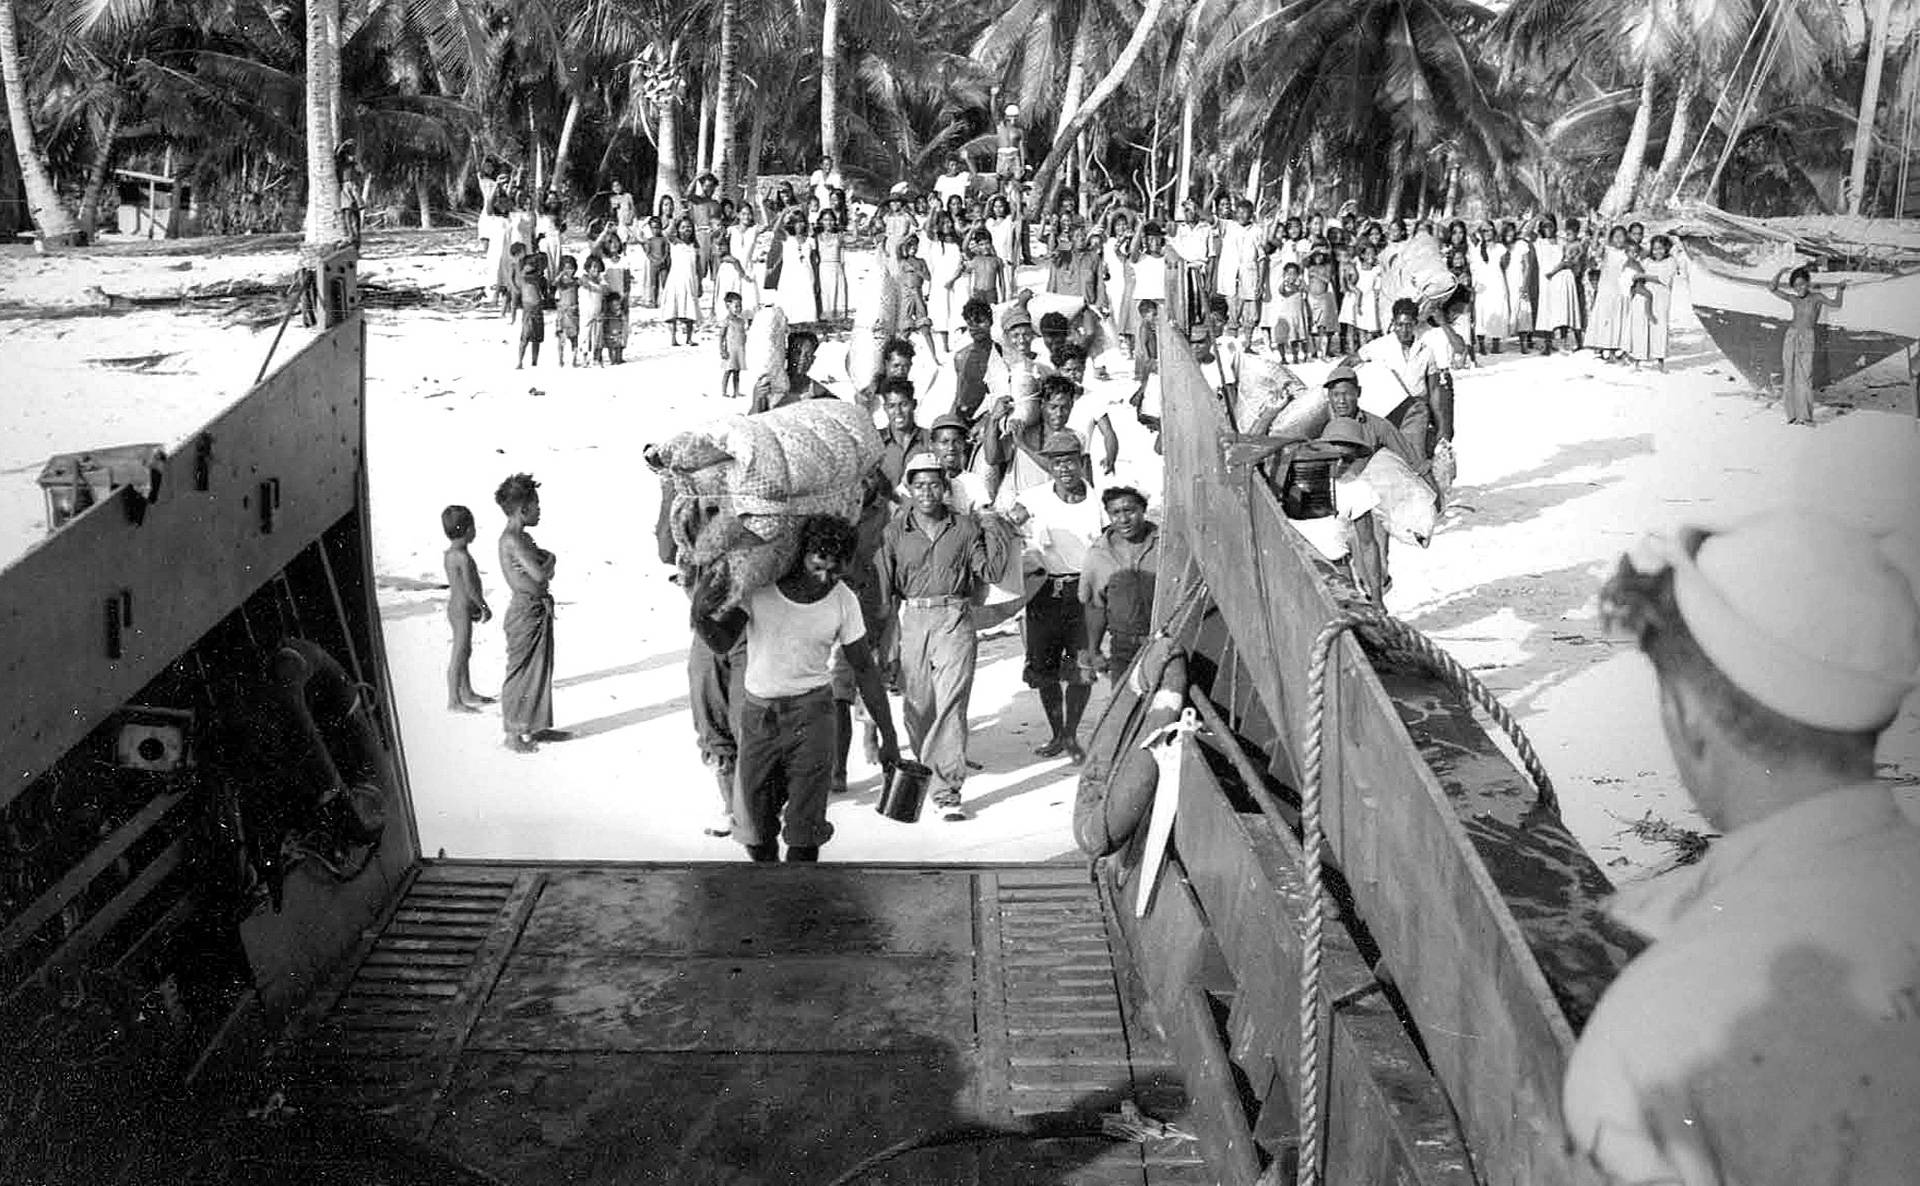 Marshallese evacuate from their island of Bikini in 1946, in advance of nuclear weapons testing. National Security Archives